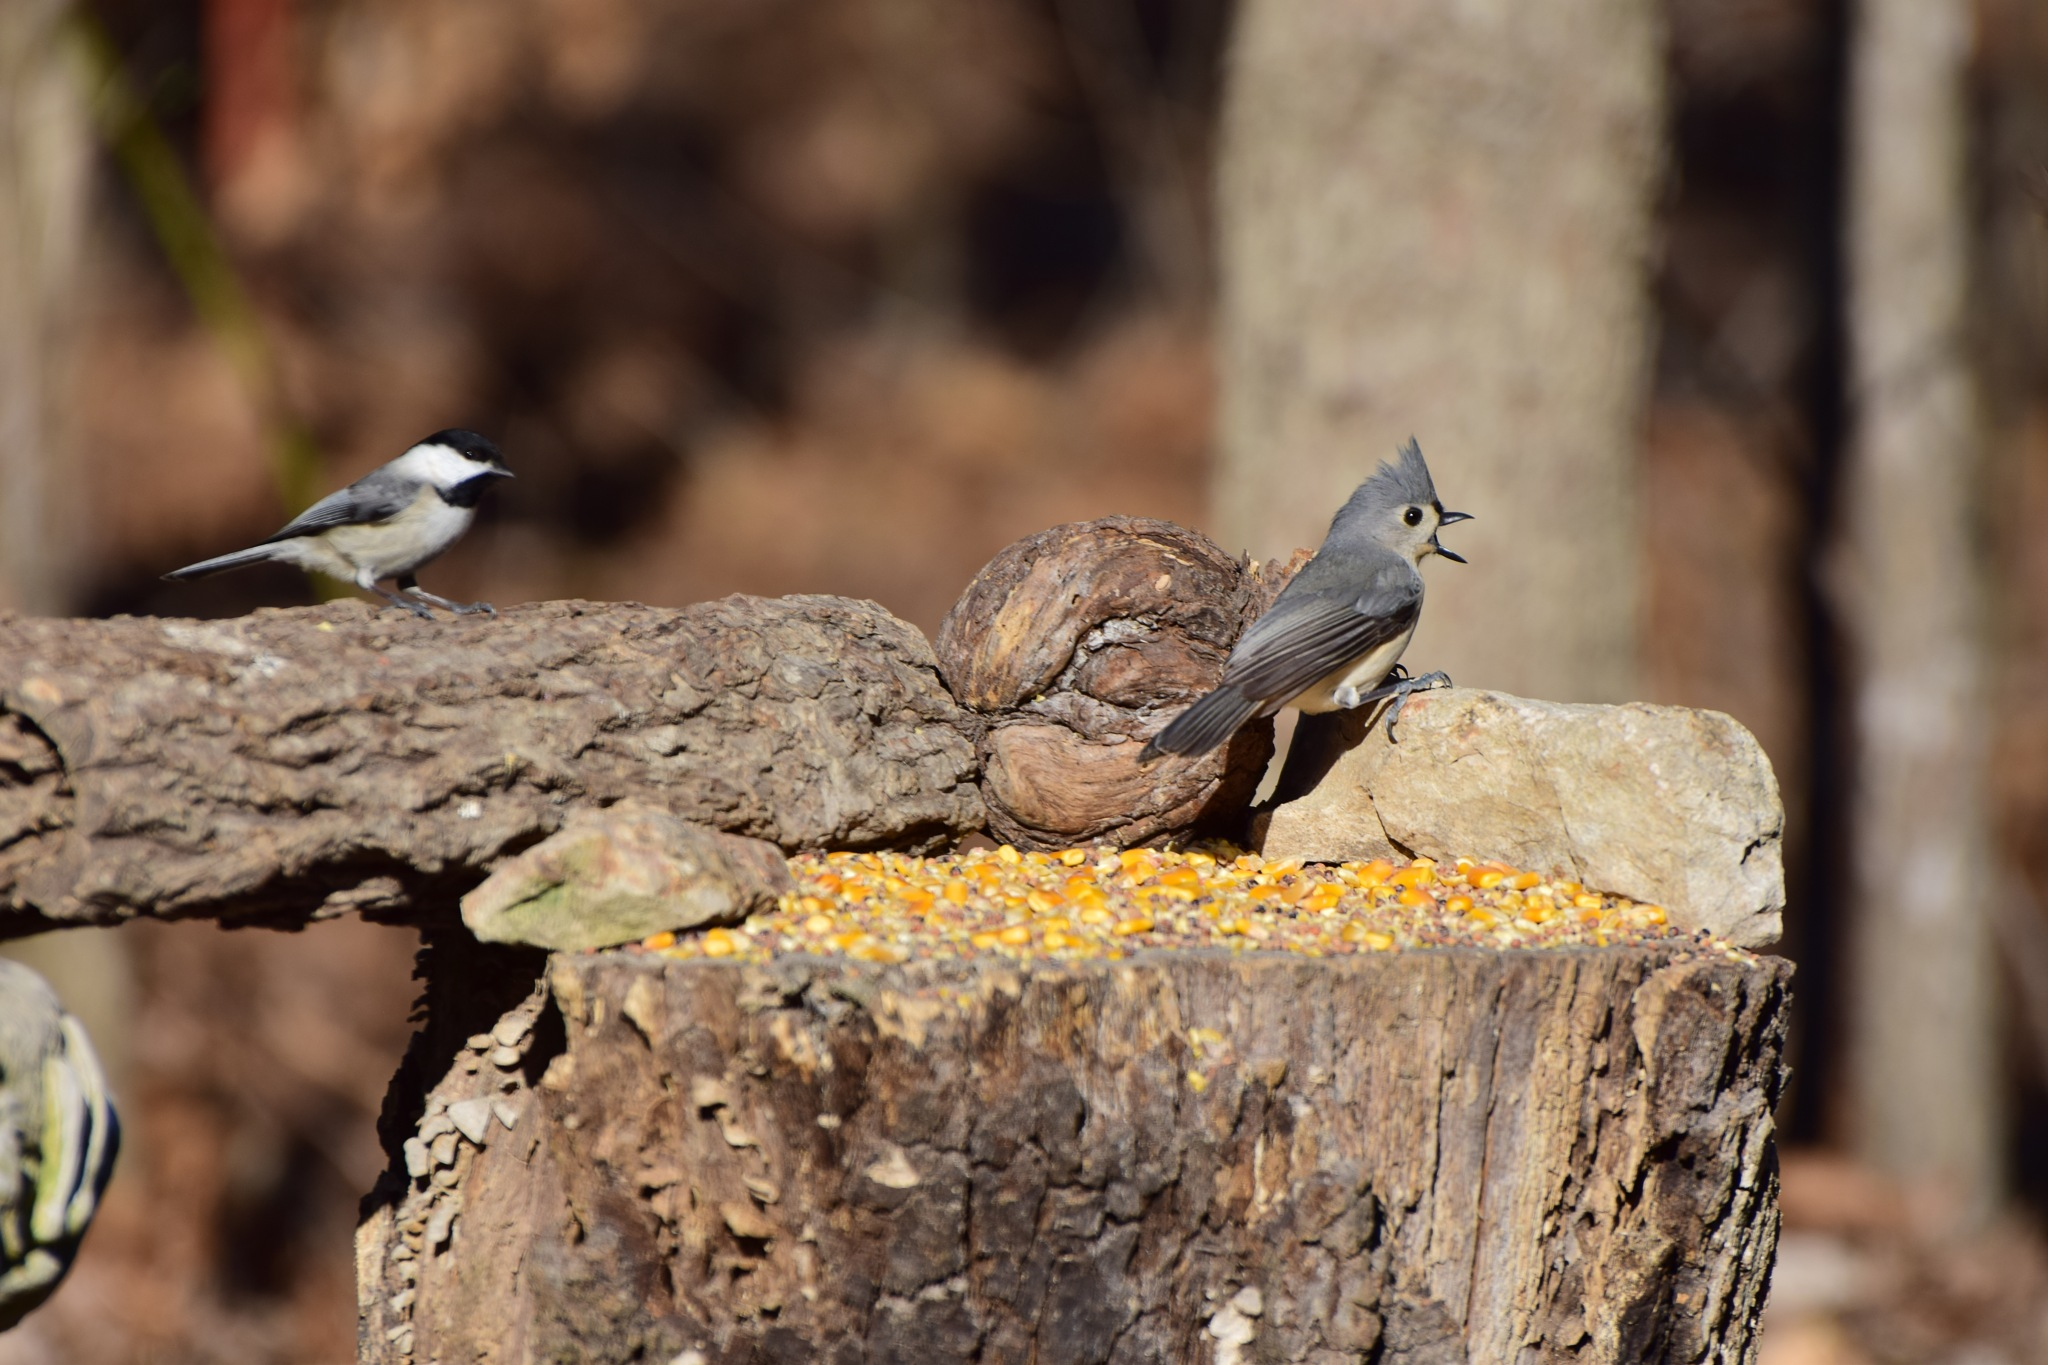 Nature's Birds 552~Squawking Tuftend Titmouse Squawking by Lawrence Scott Hess